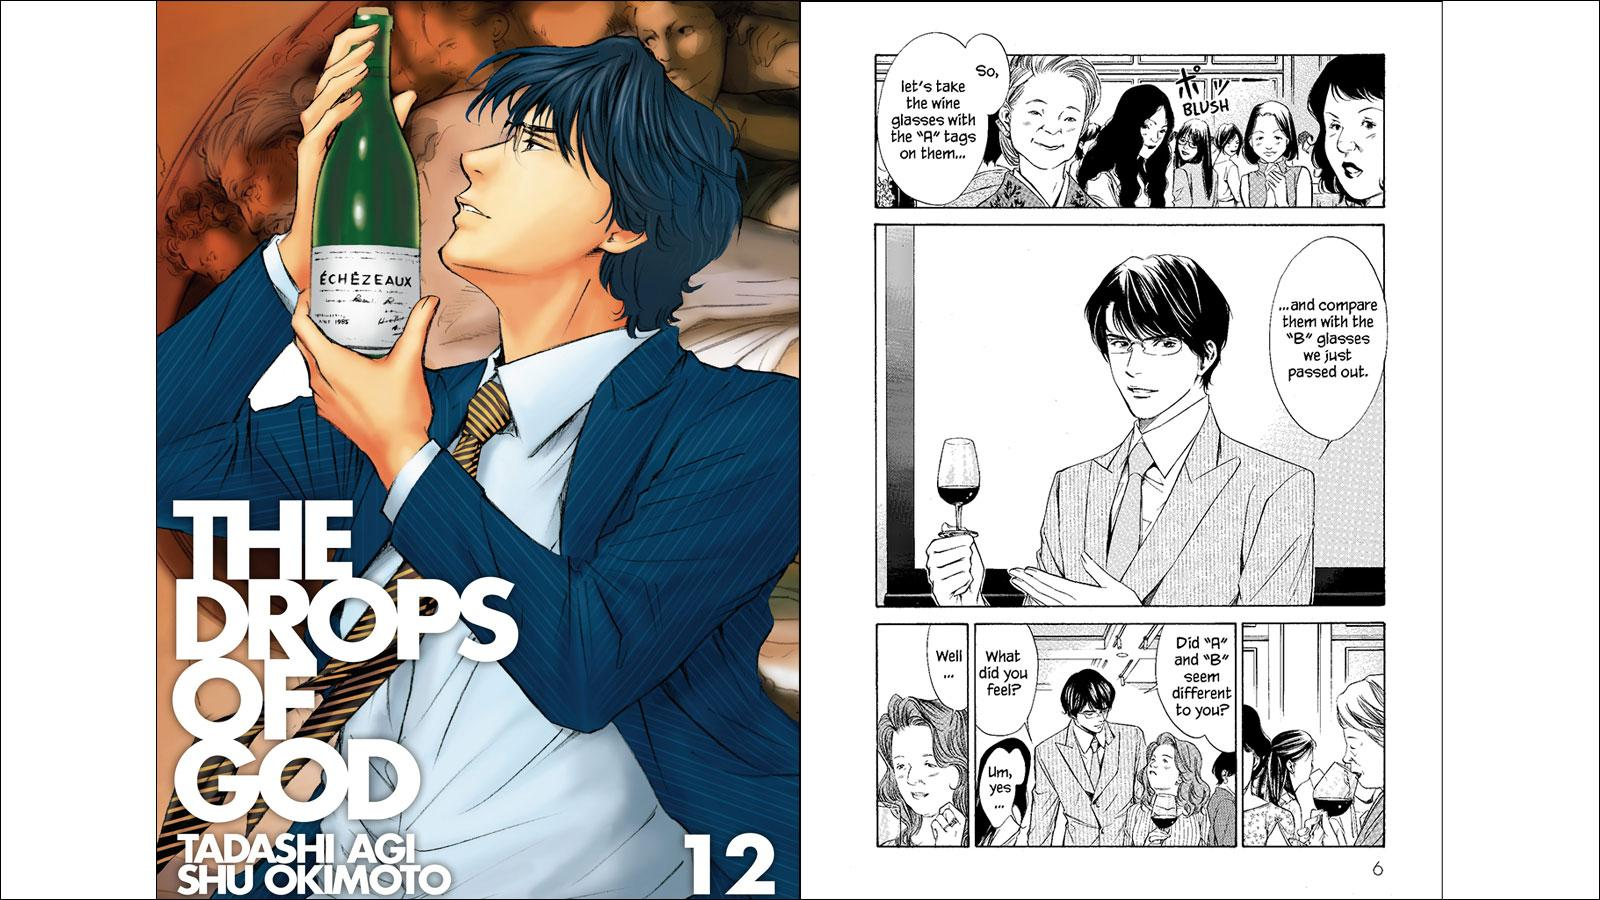 The Adventure Continues: 'Drops of God' Wine Manga Drops New Issues in English